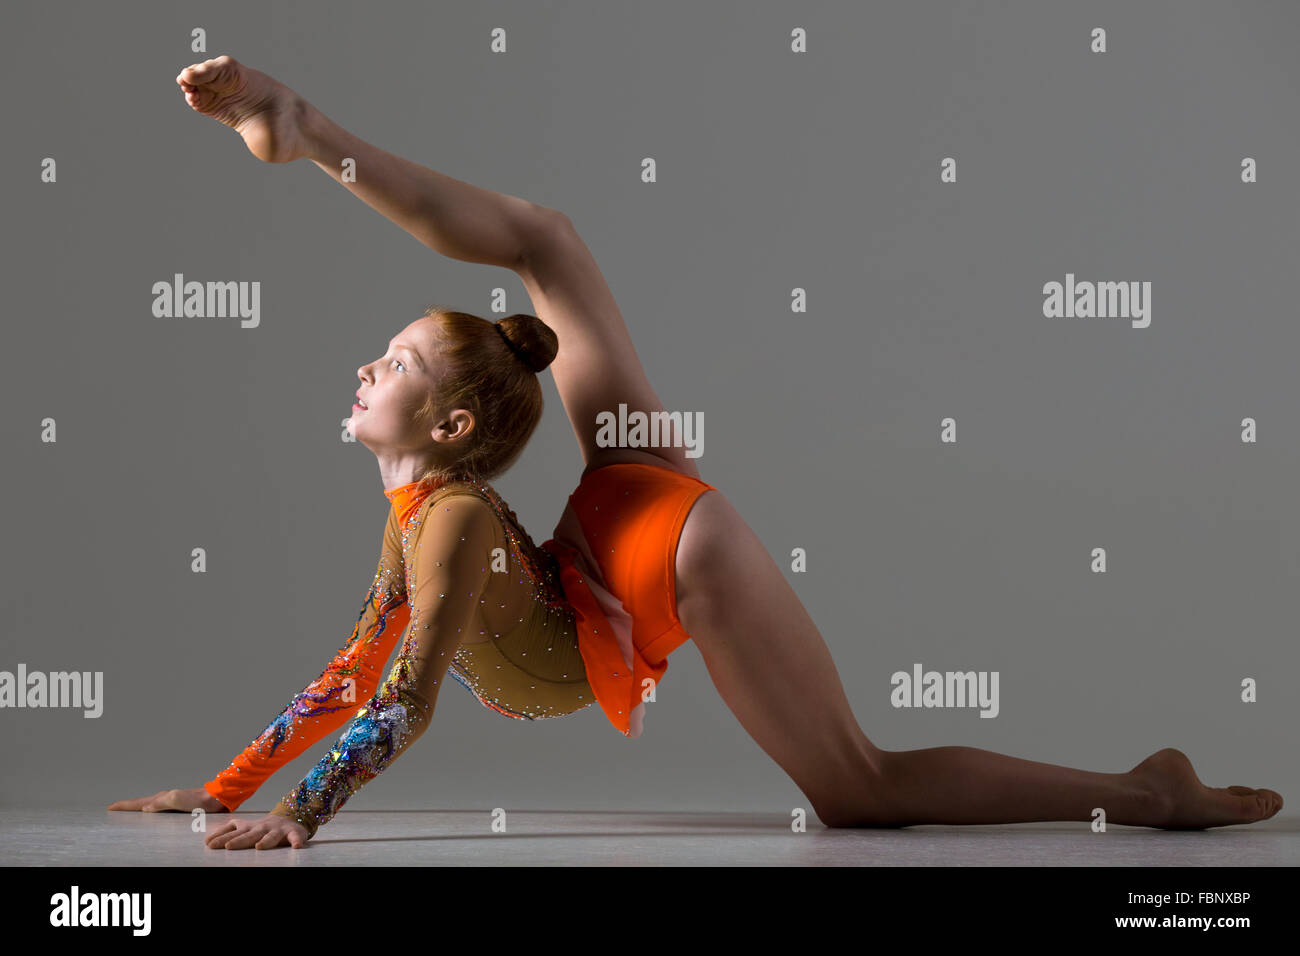 Athlète gymnaste attrayant teenage girl wearing colorful danseur danseur de l'exercice, danse, pose, faisant backbend, Banque D'Images